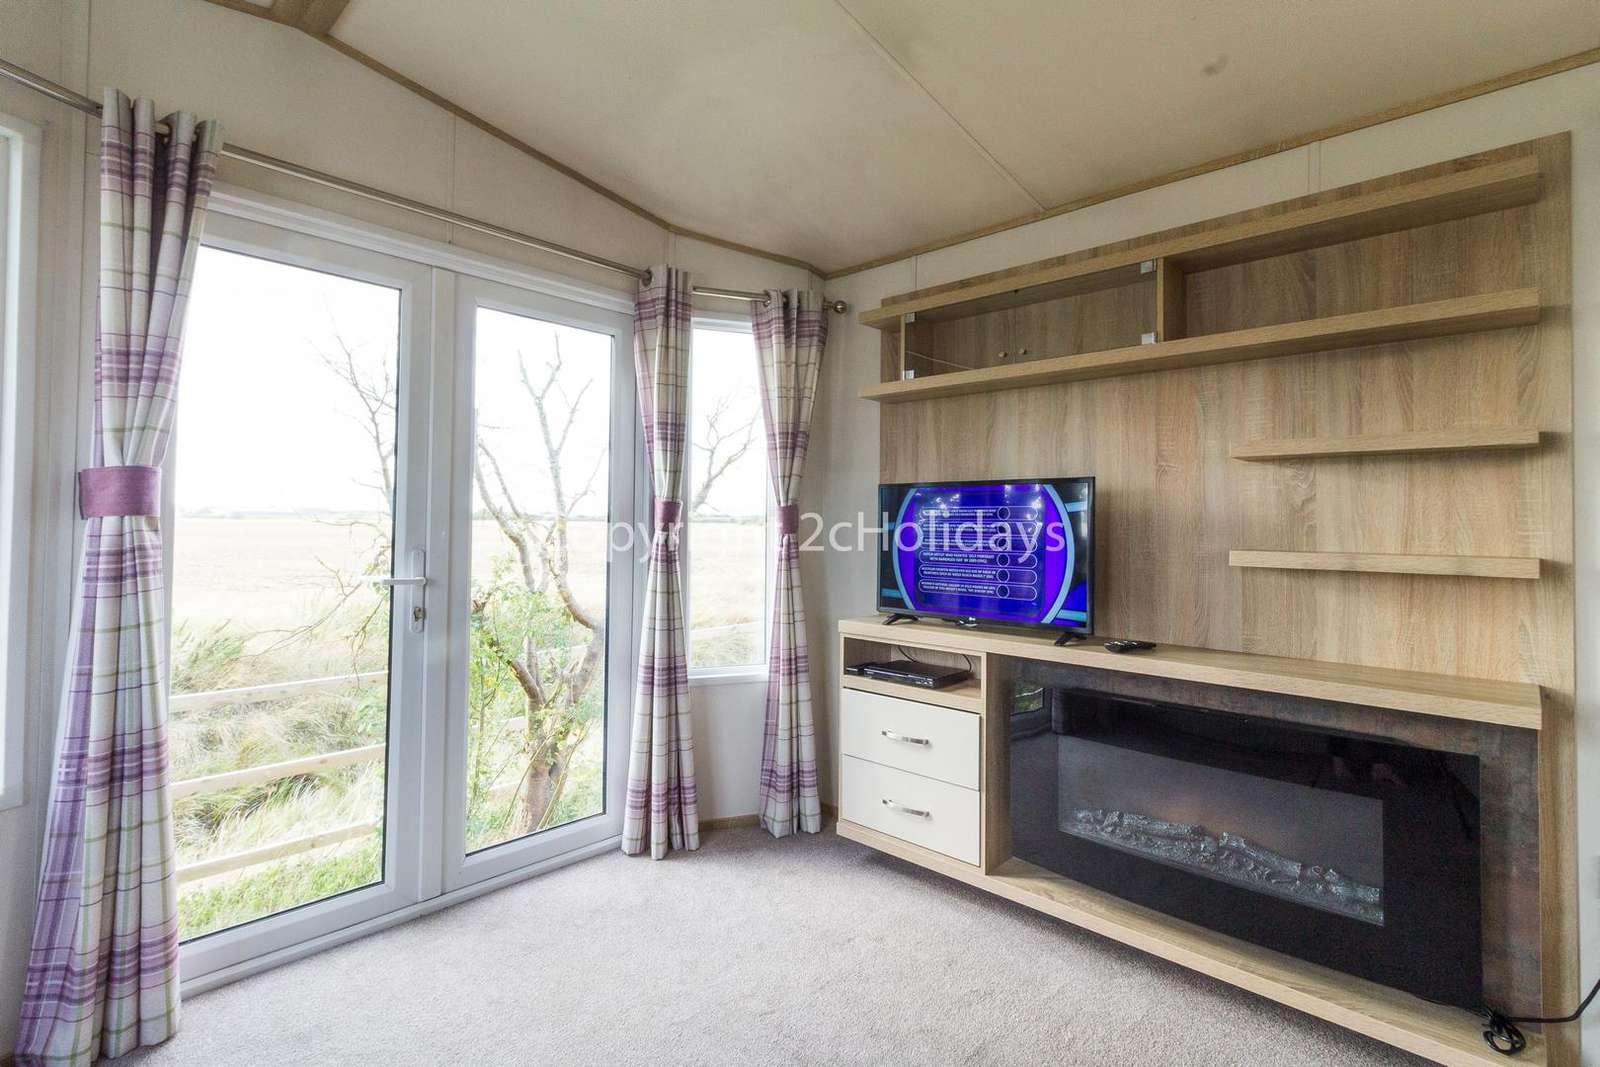 Light and airy lounge area with a TV and electric fire!